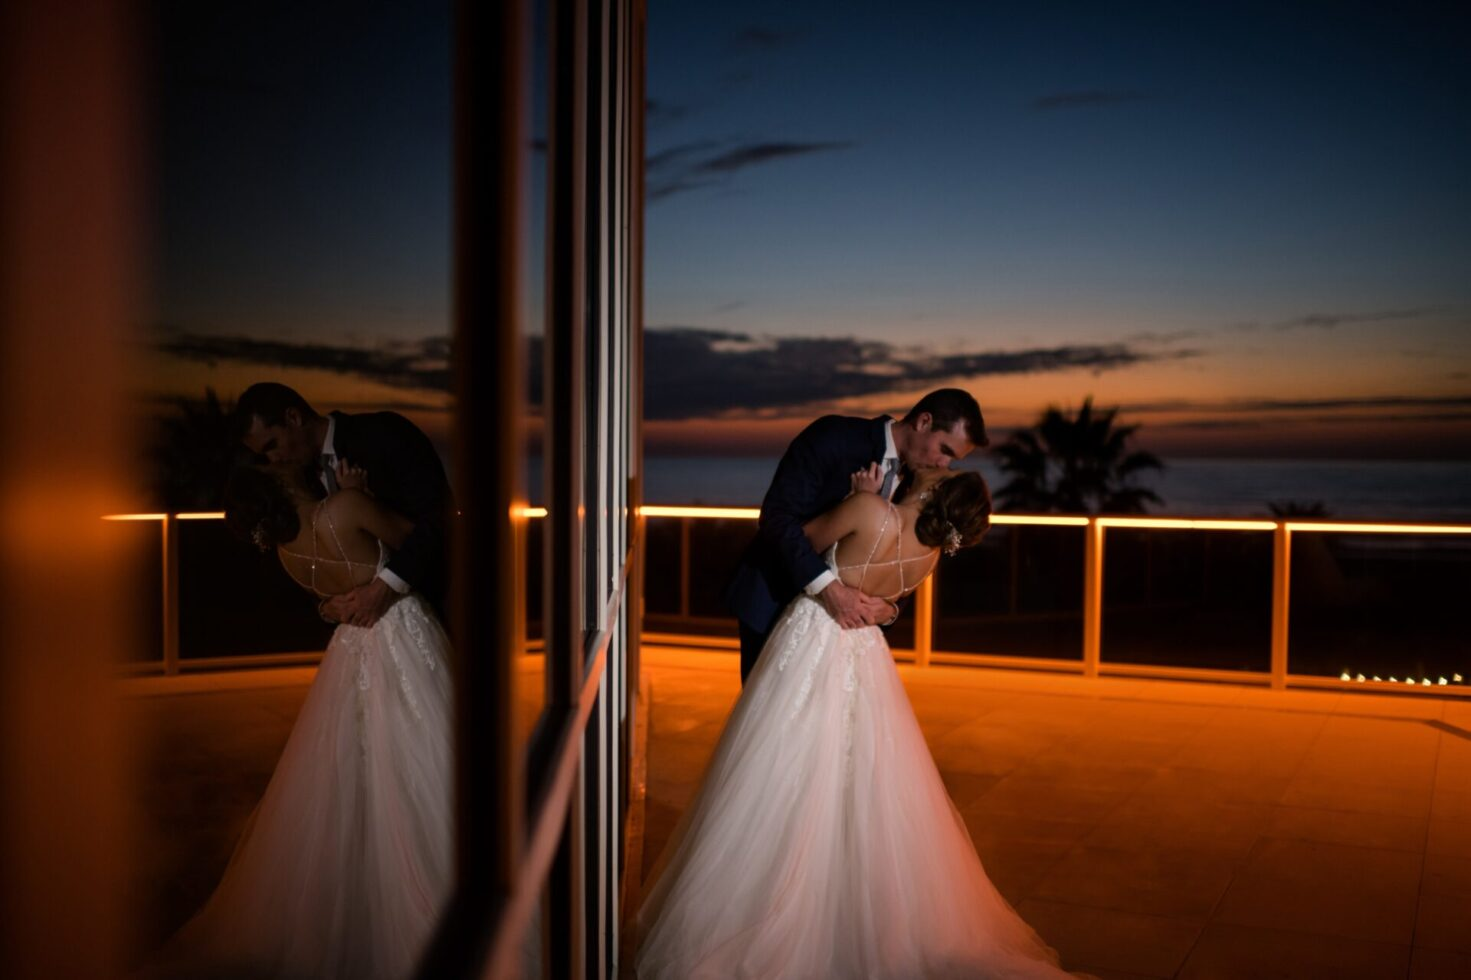 Marriott Rooftop Sunset Wedding View Photo